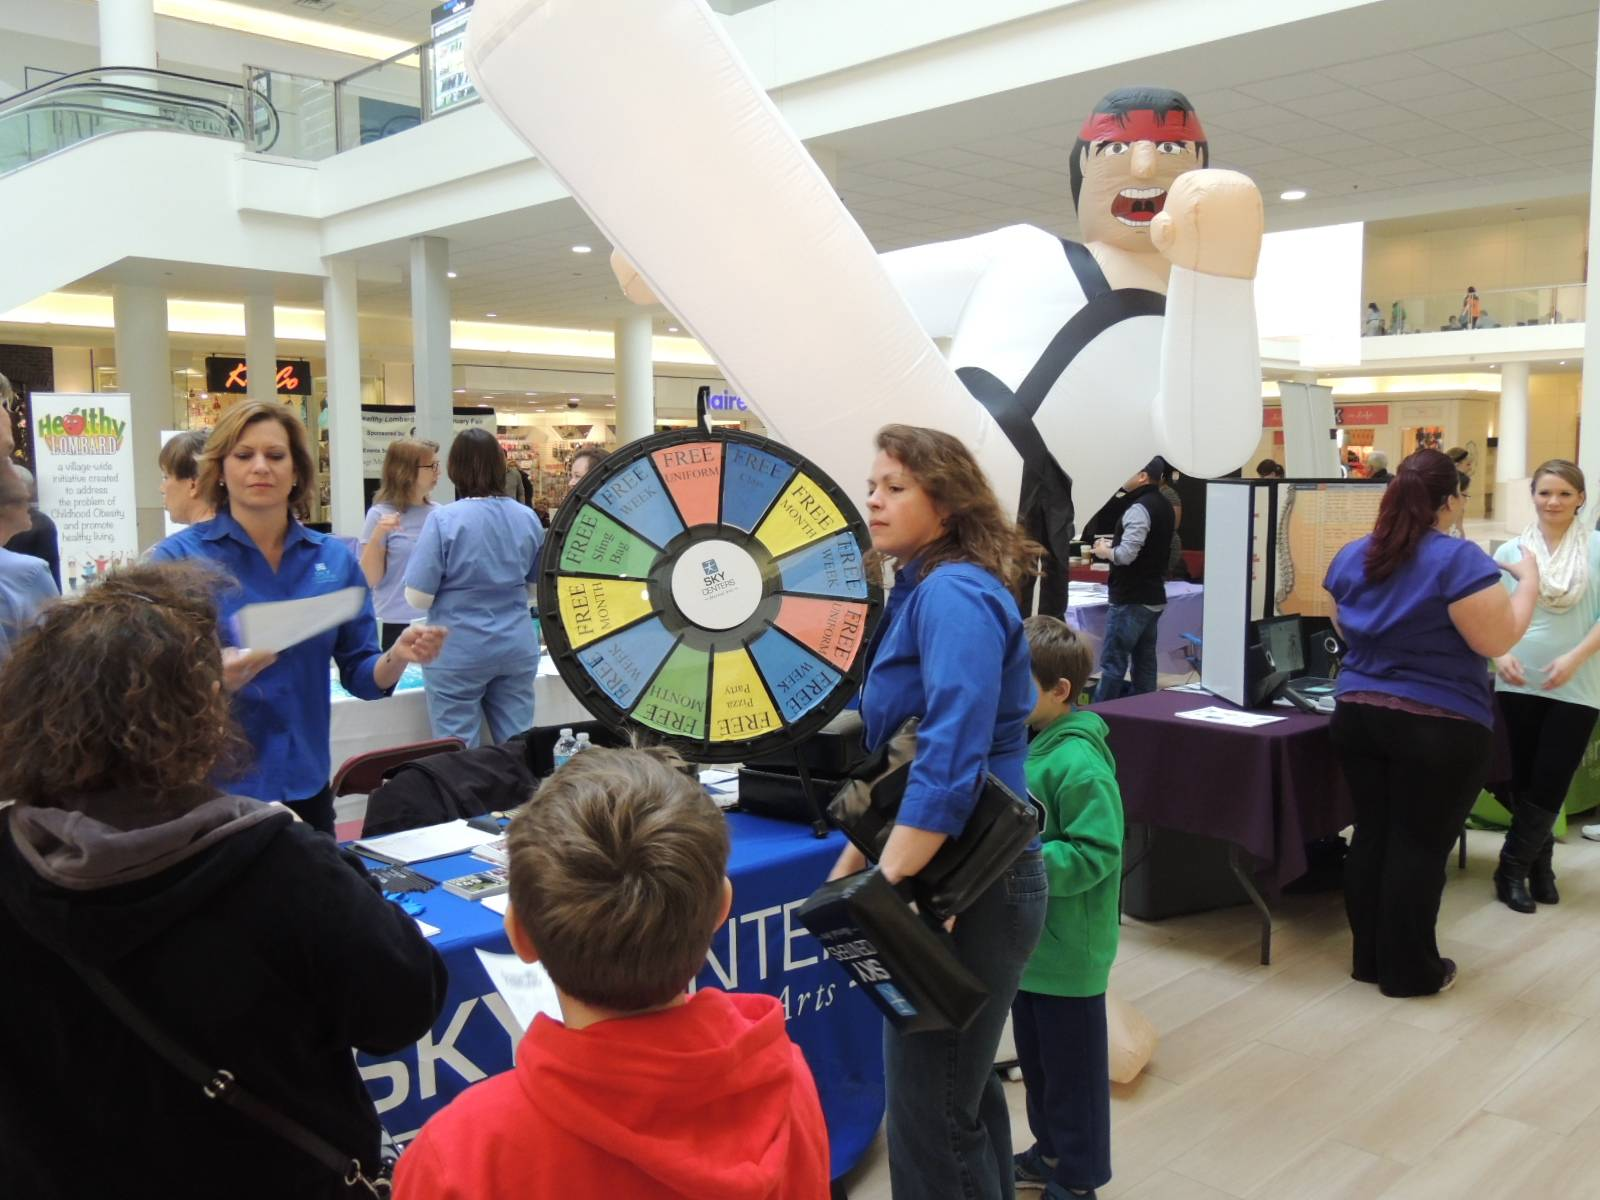 The February Fitness Fair at Yorktown mall offers visitors a variety of activities, information and contests to make them more aware of how to live healthy lives.